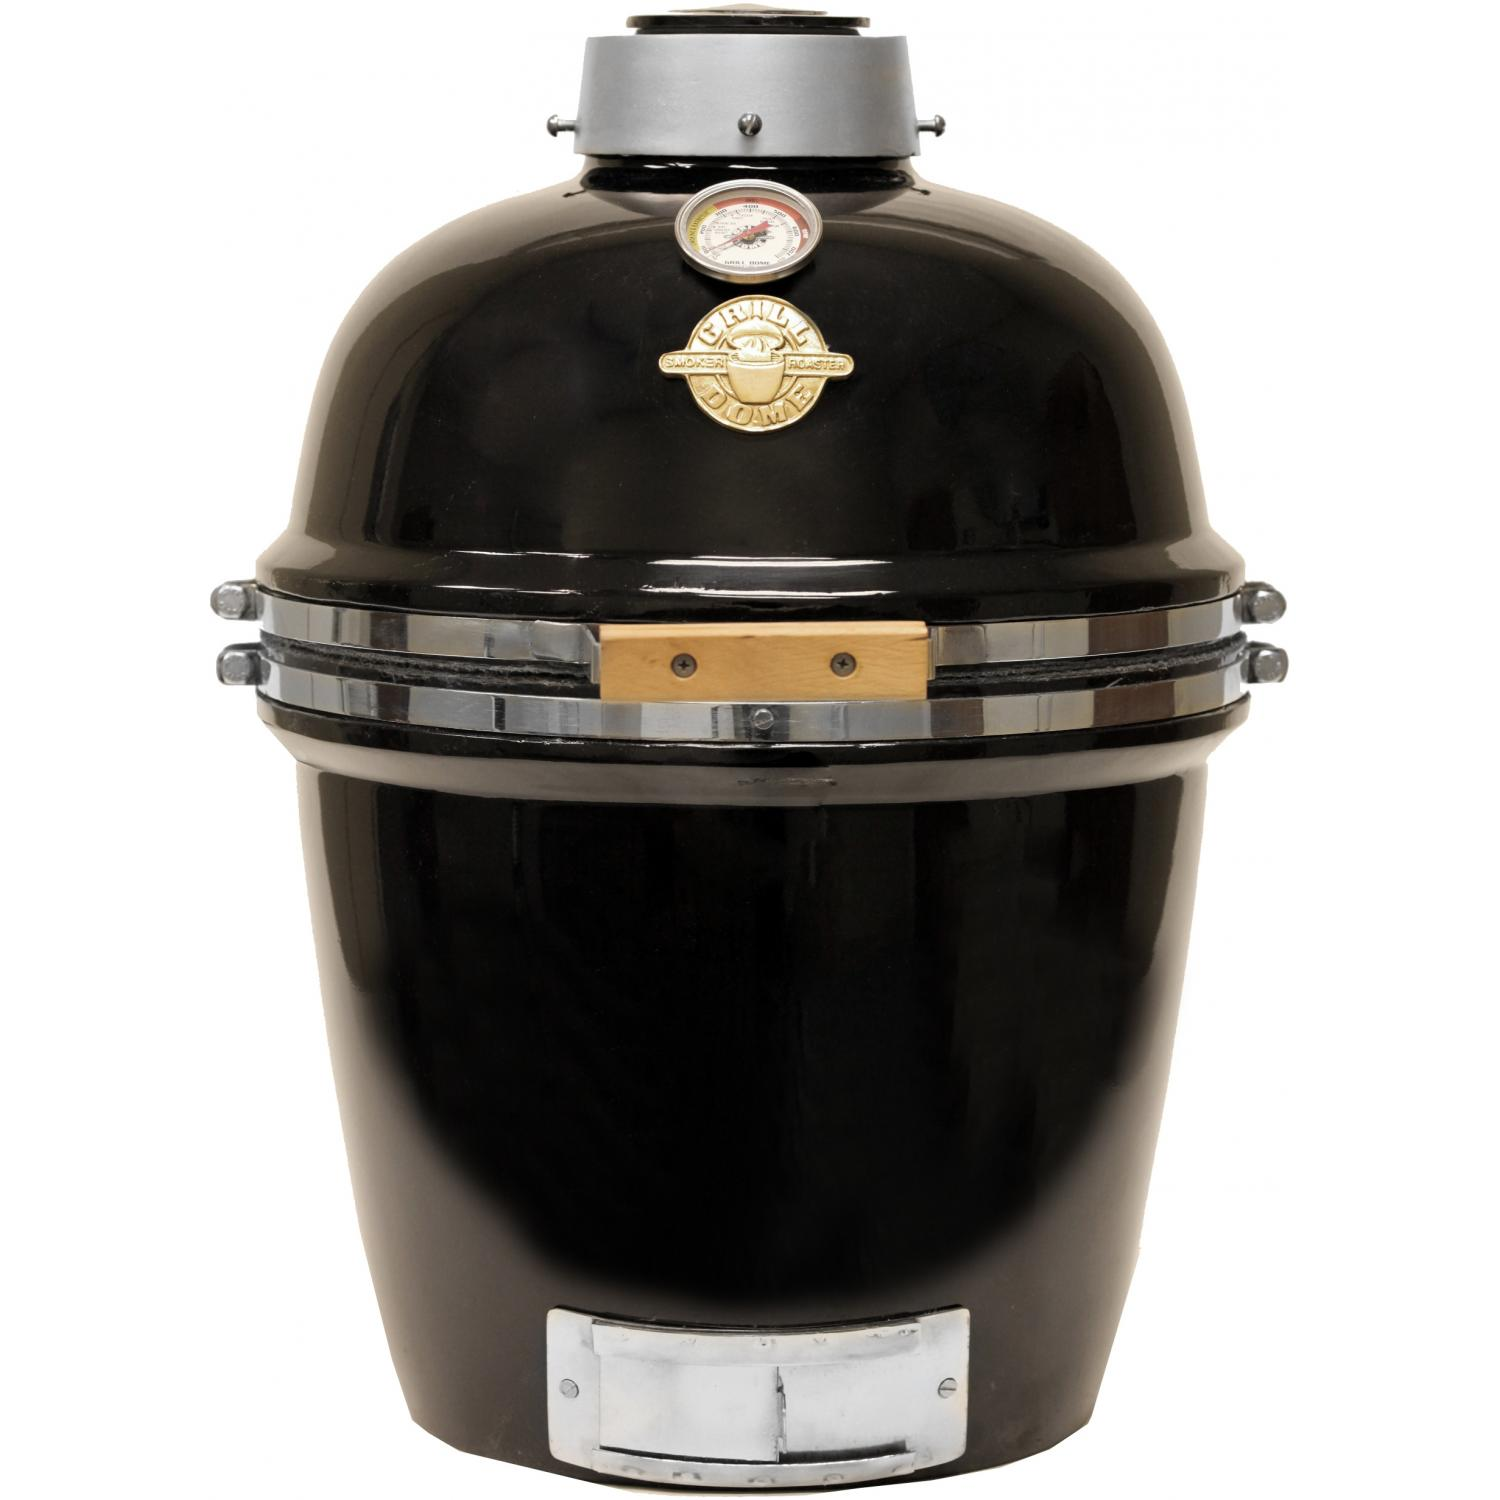 Grill Dome Infinity Series Small Kamado Grill - Black, Discount ID GDS-BK